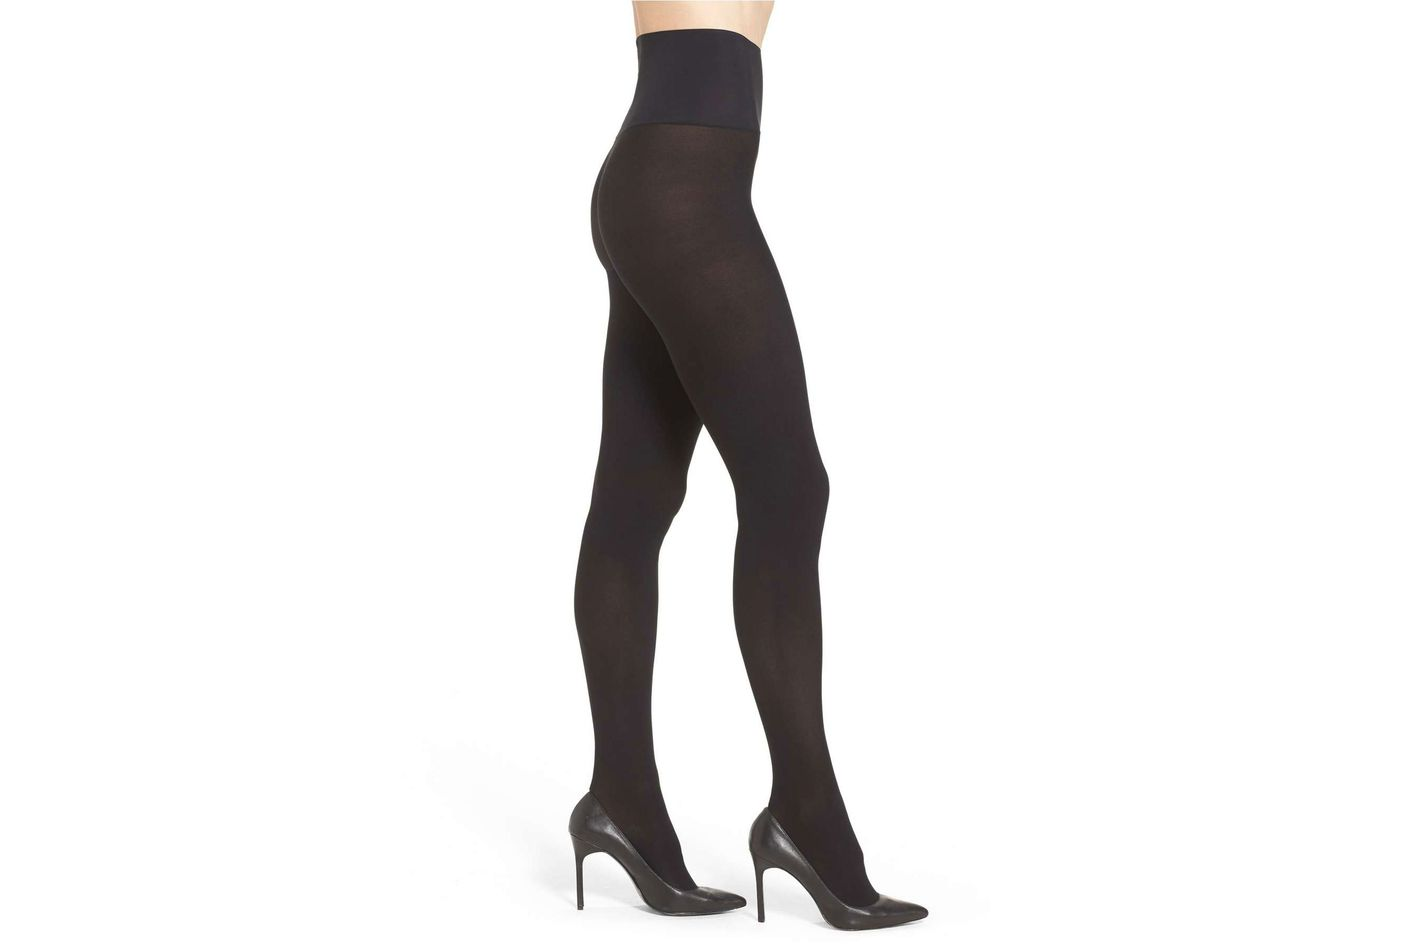 a90e9e4a1ec 8 Best Black Tights Women 2017  Opaque